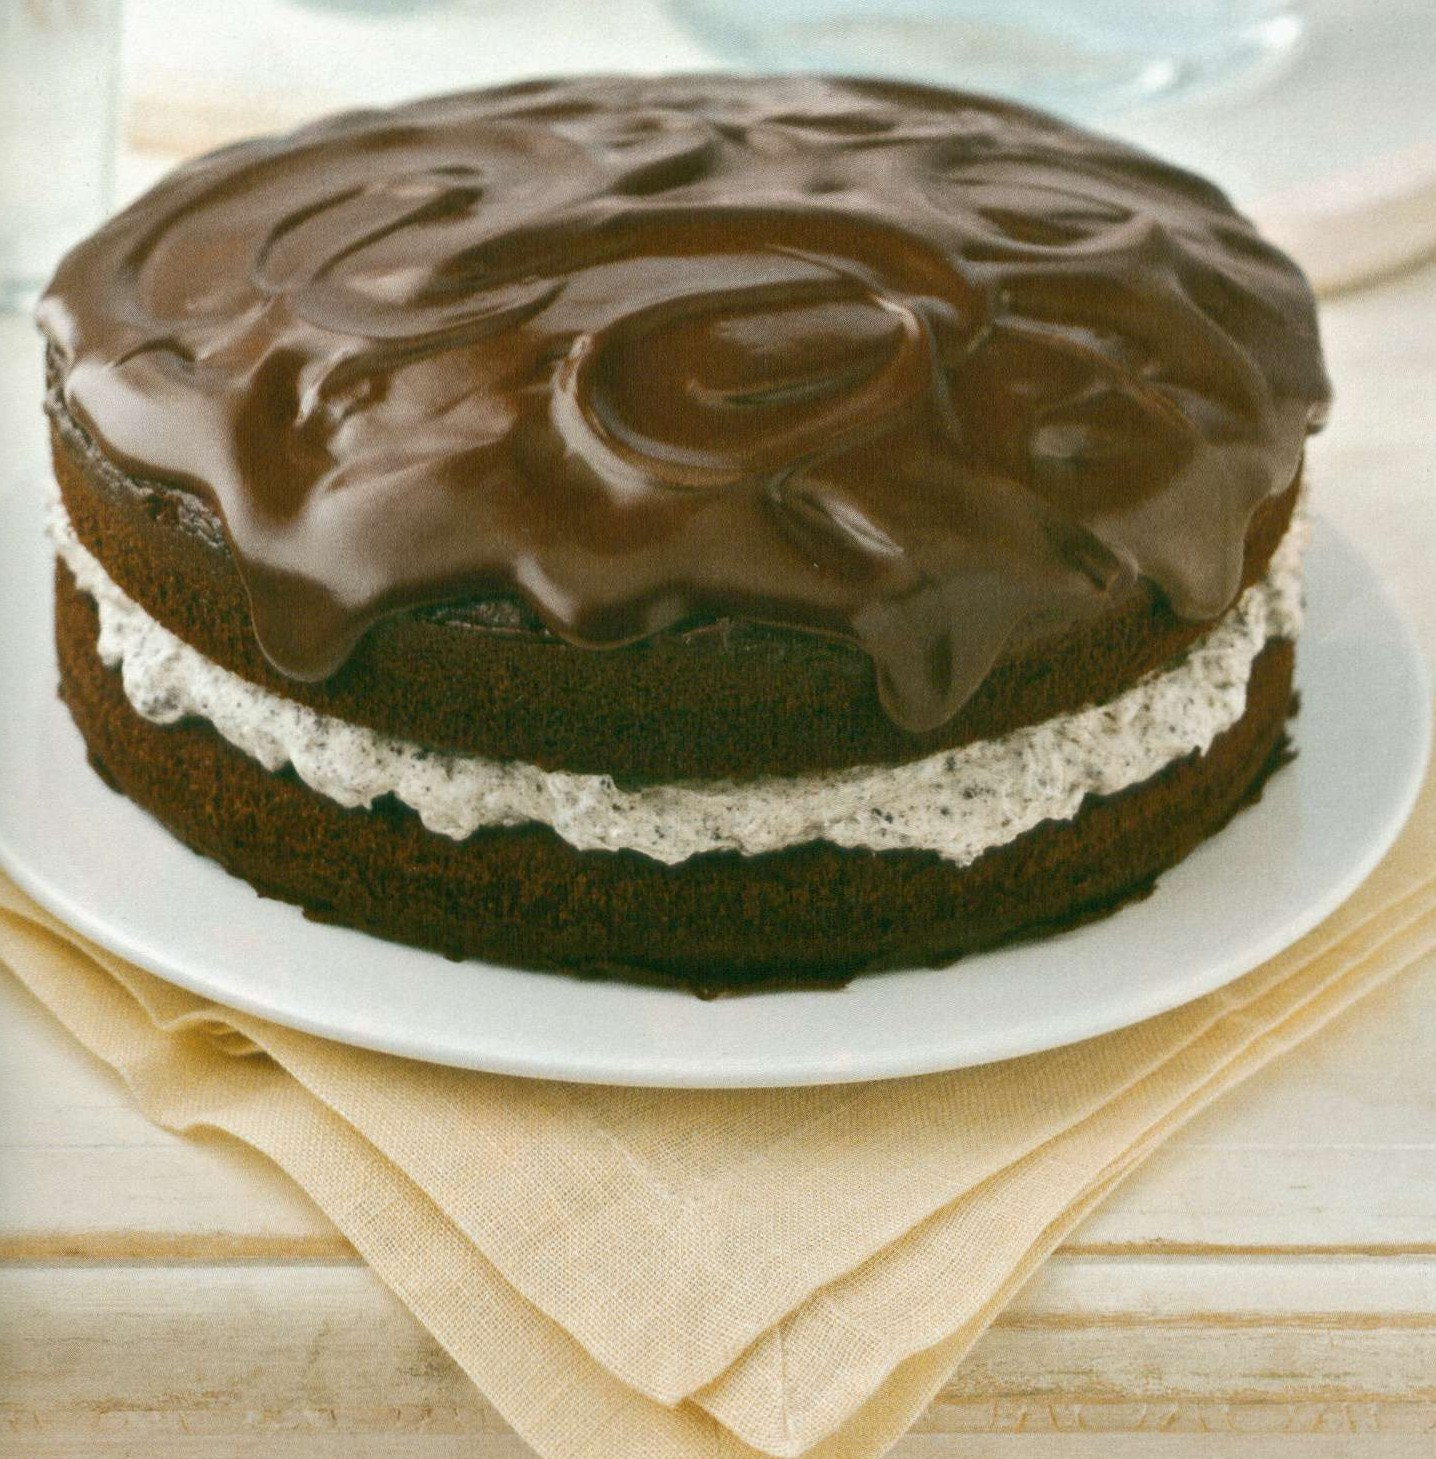 Rosanna S Kitchen Chocolate Covered Oreo Cookie Cake